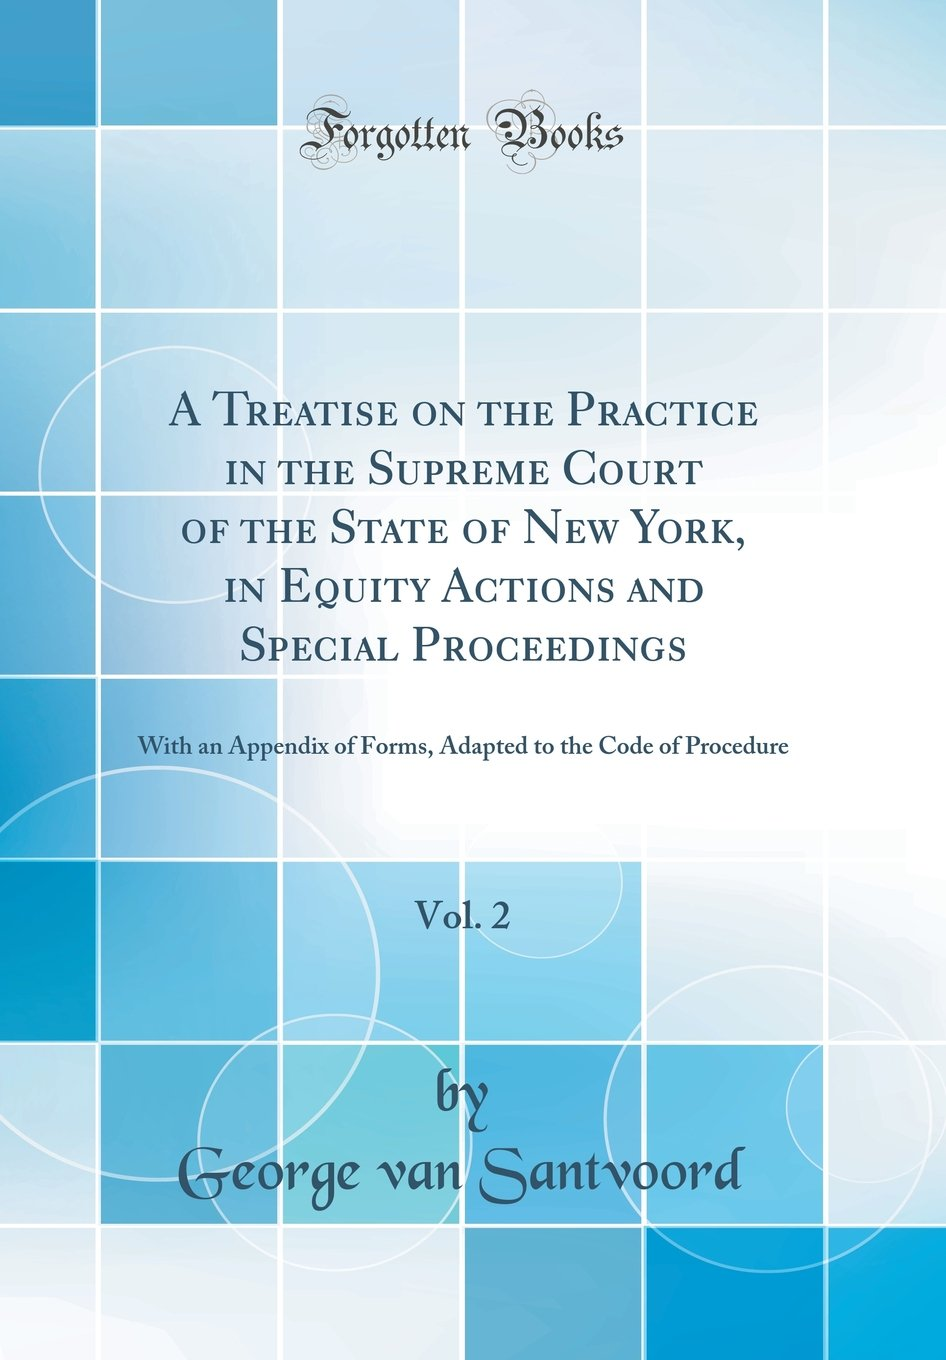 Download A Treatise on the Practice in the Supreme Court of the State of New York, in Equity Actions and Special Proceedings, Vol. 2: With an Appendix of ... to the Code of Procedure (Classic Reprint) ebook